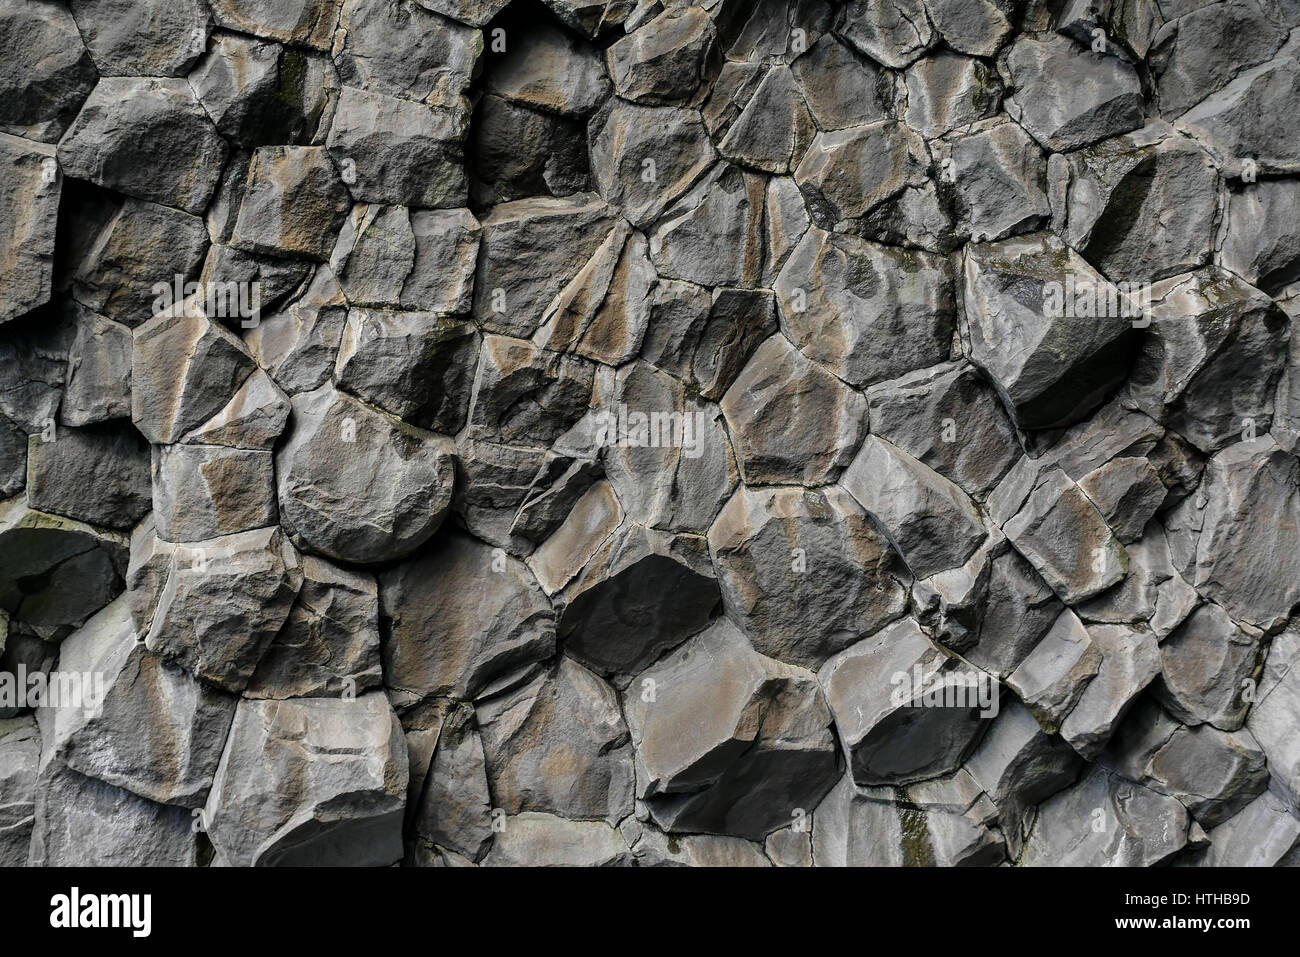 Volcanic basalt rock hexagon background pattern, Reynisfjara, Iceland - Stock Image